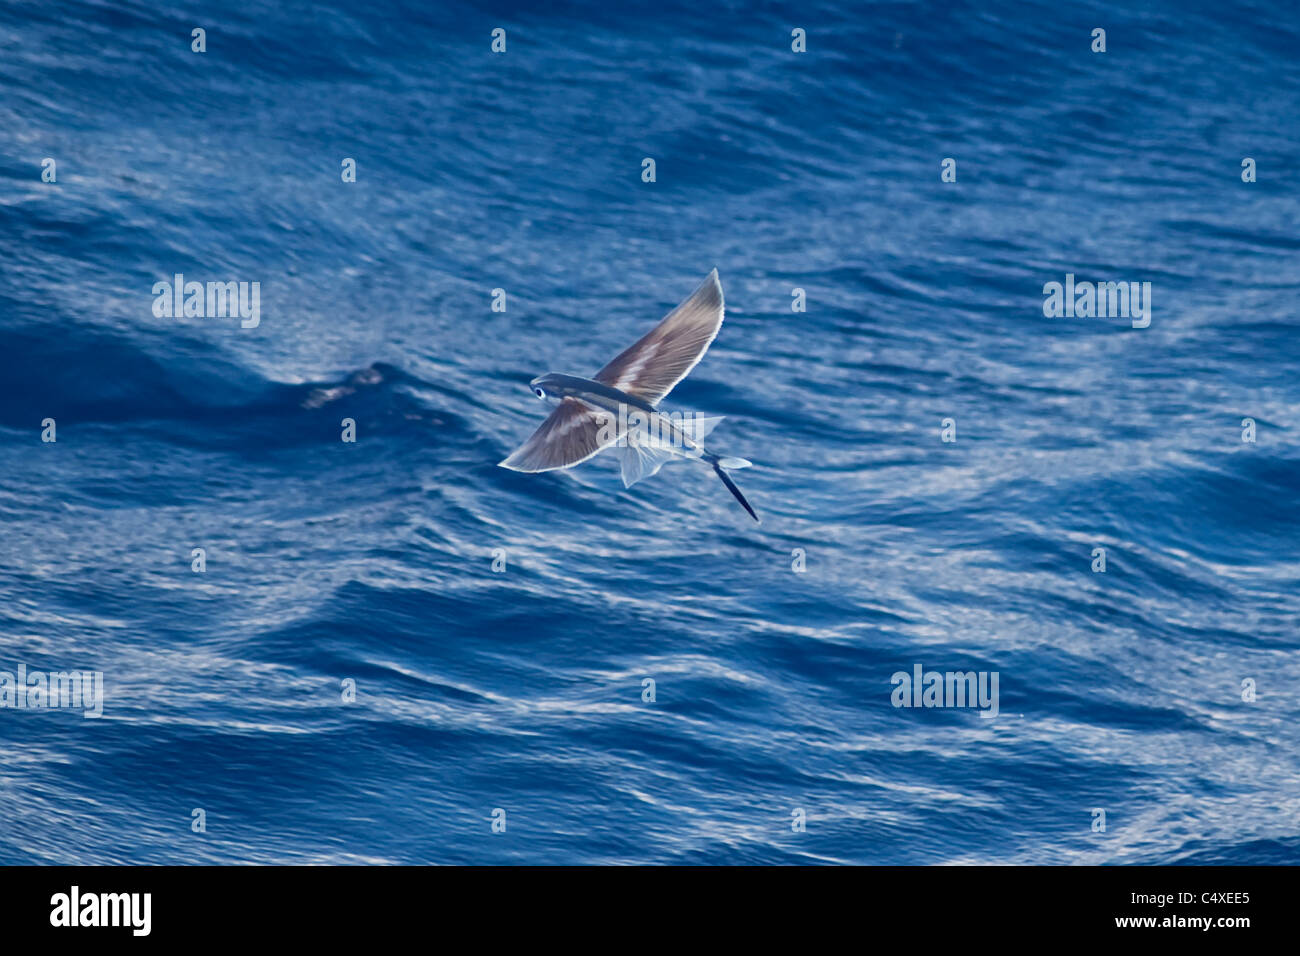 Flying fish species scientific name unknown rare unusual for Flying fish name